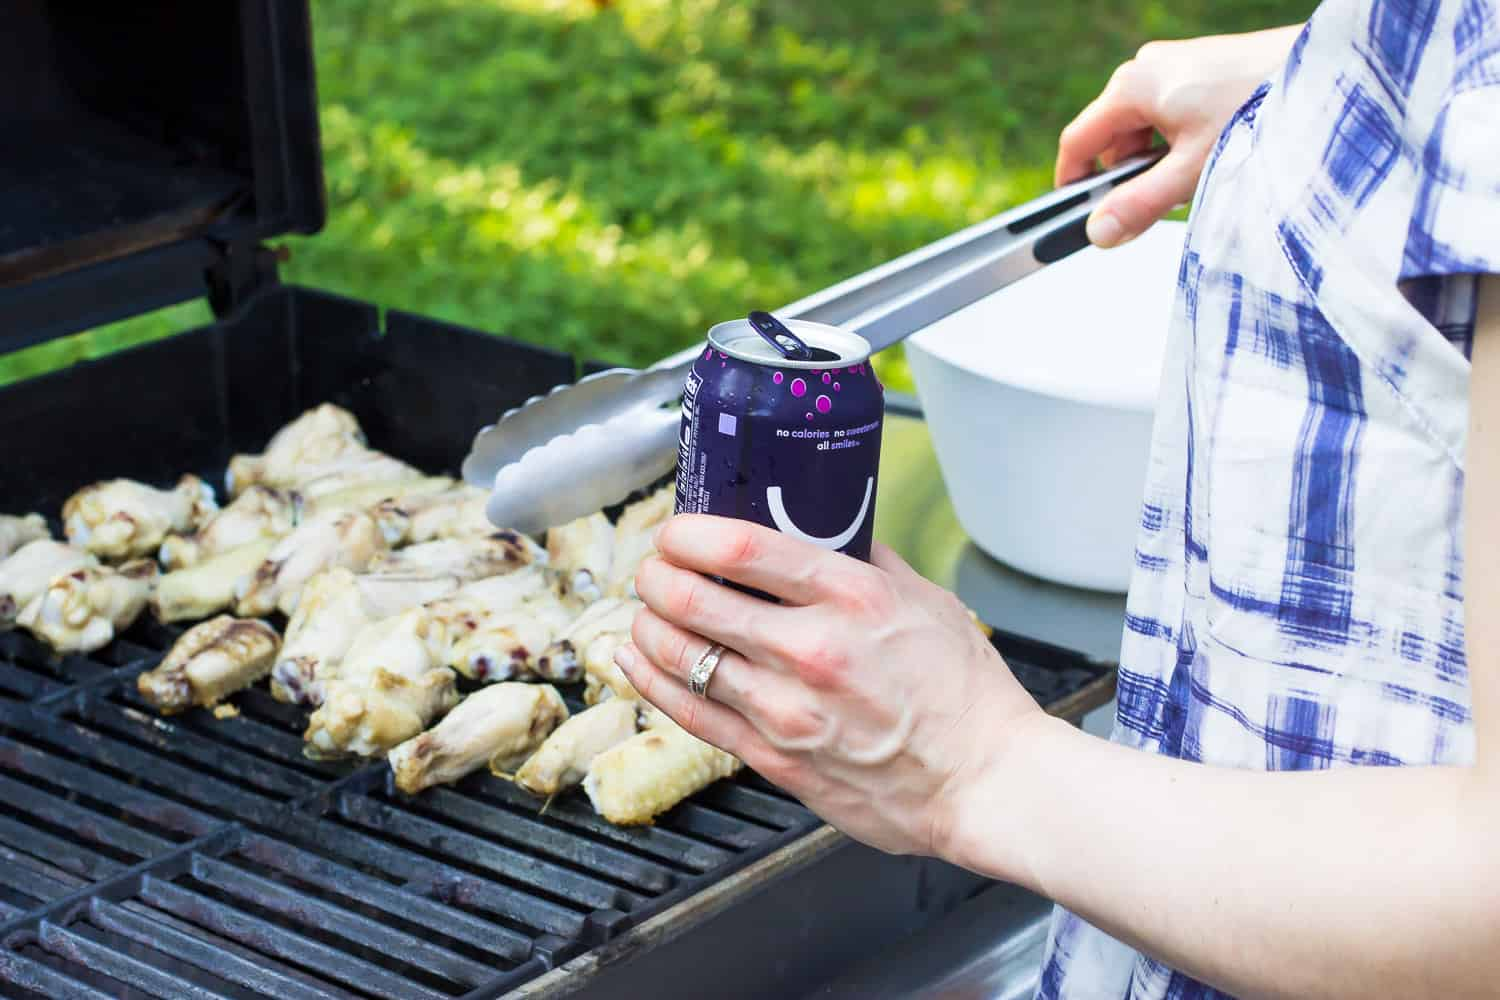 A woman cooking wings on a grill holding a can of water.